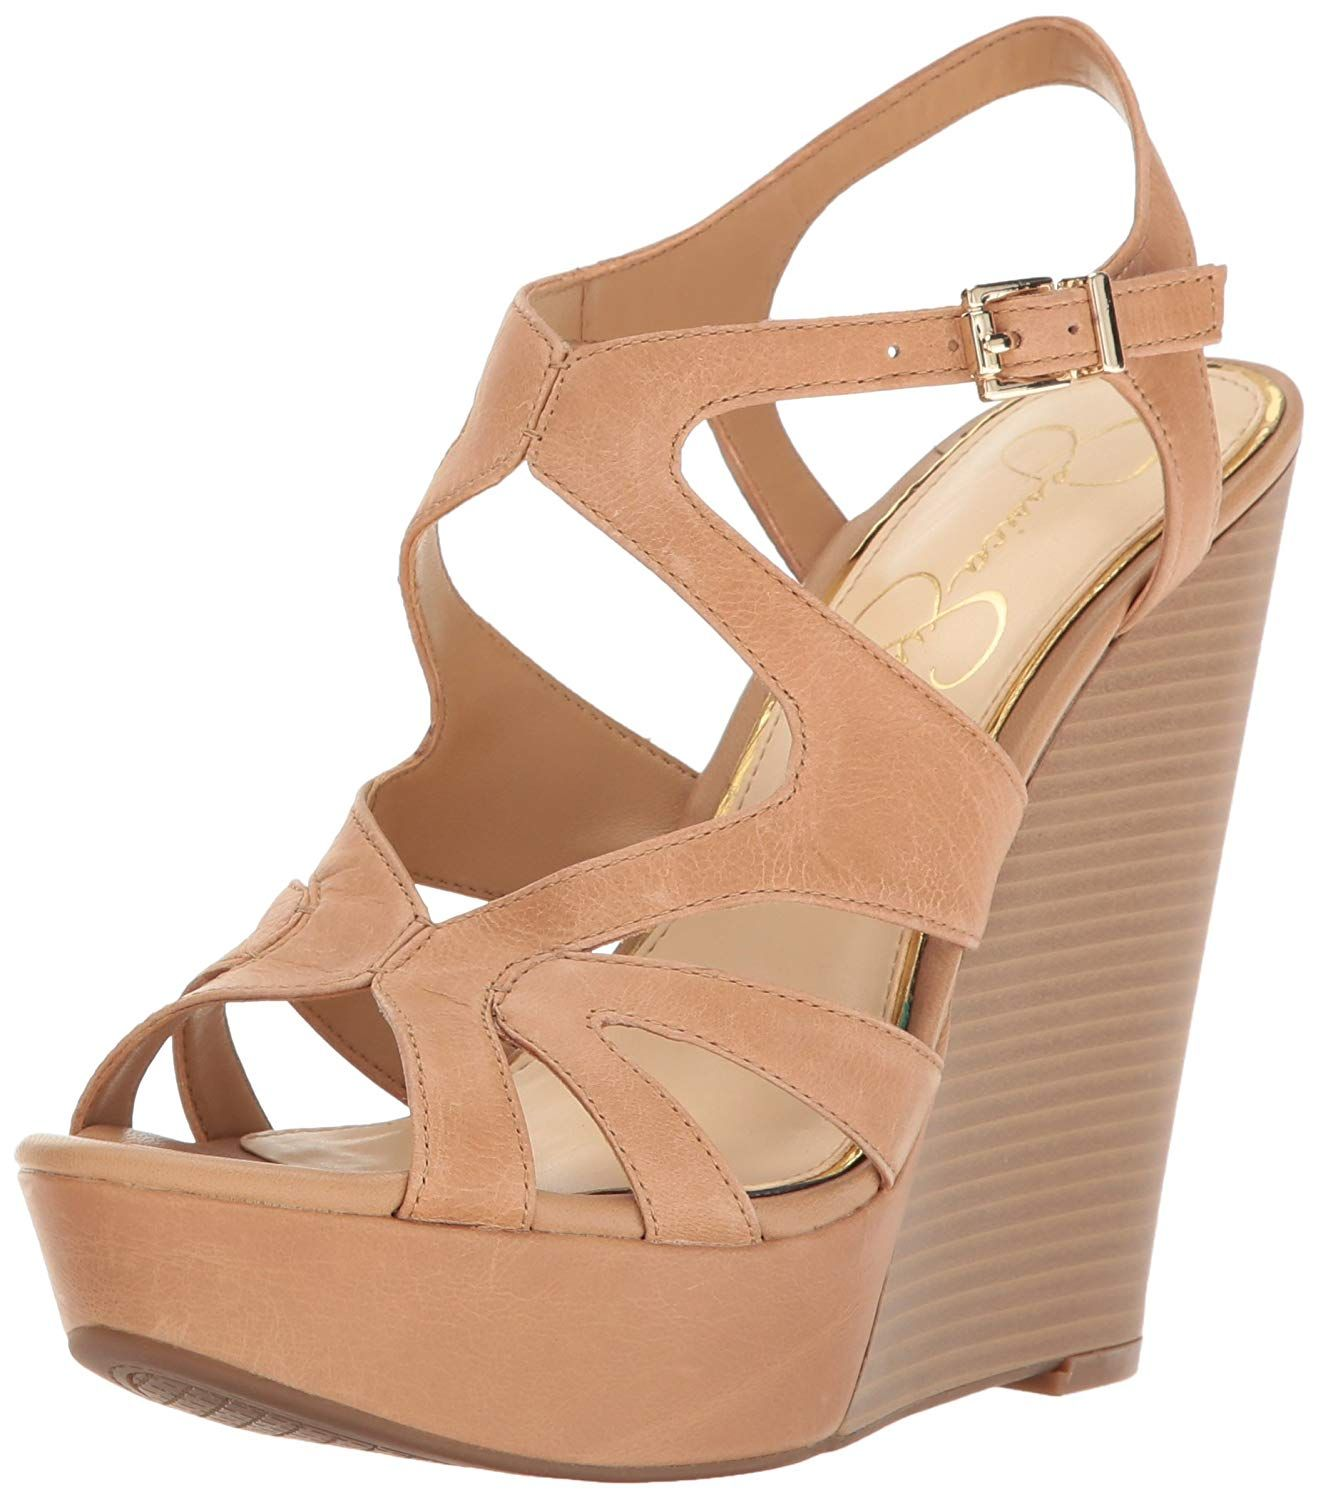 946c46197d5f Jessica Simpson Women s Brissah Wedge Sandal. Sexy high heel wedge Jessica  Simpson is famous for her fun